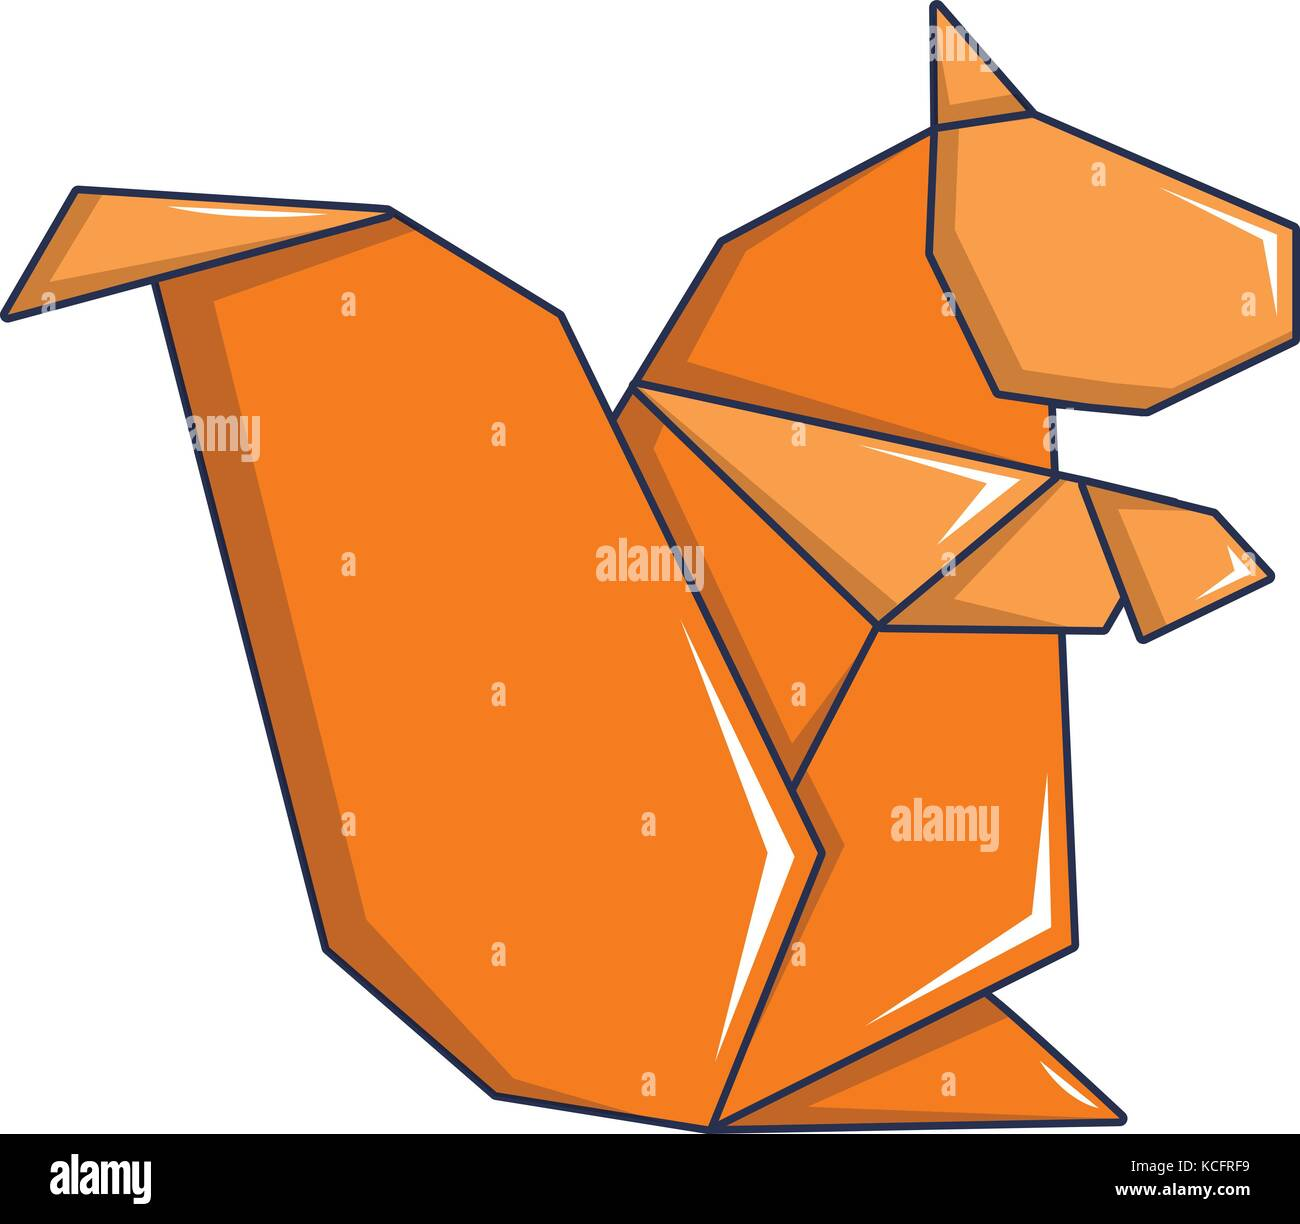 Cartoon Squirrel Stock Photos Images Alamy Advanced Origami Fox Instructions Diagram Of The Icon Style Image